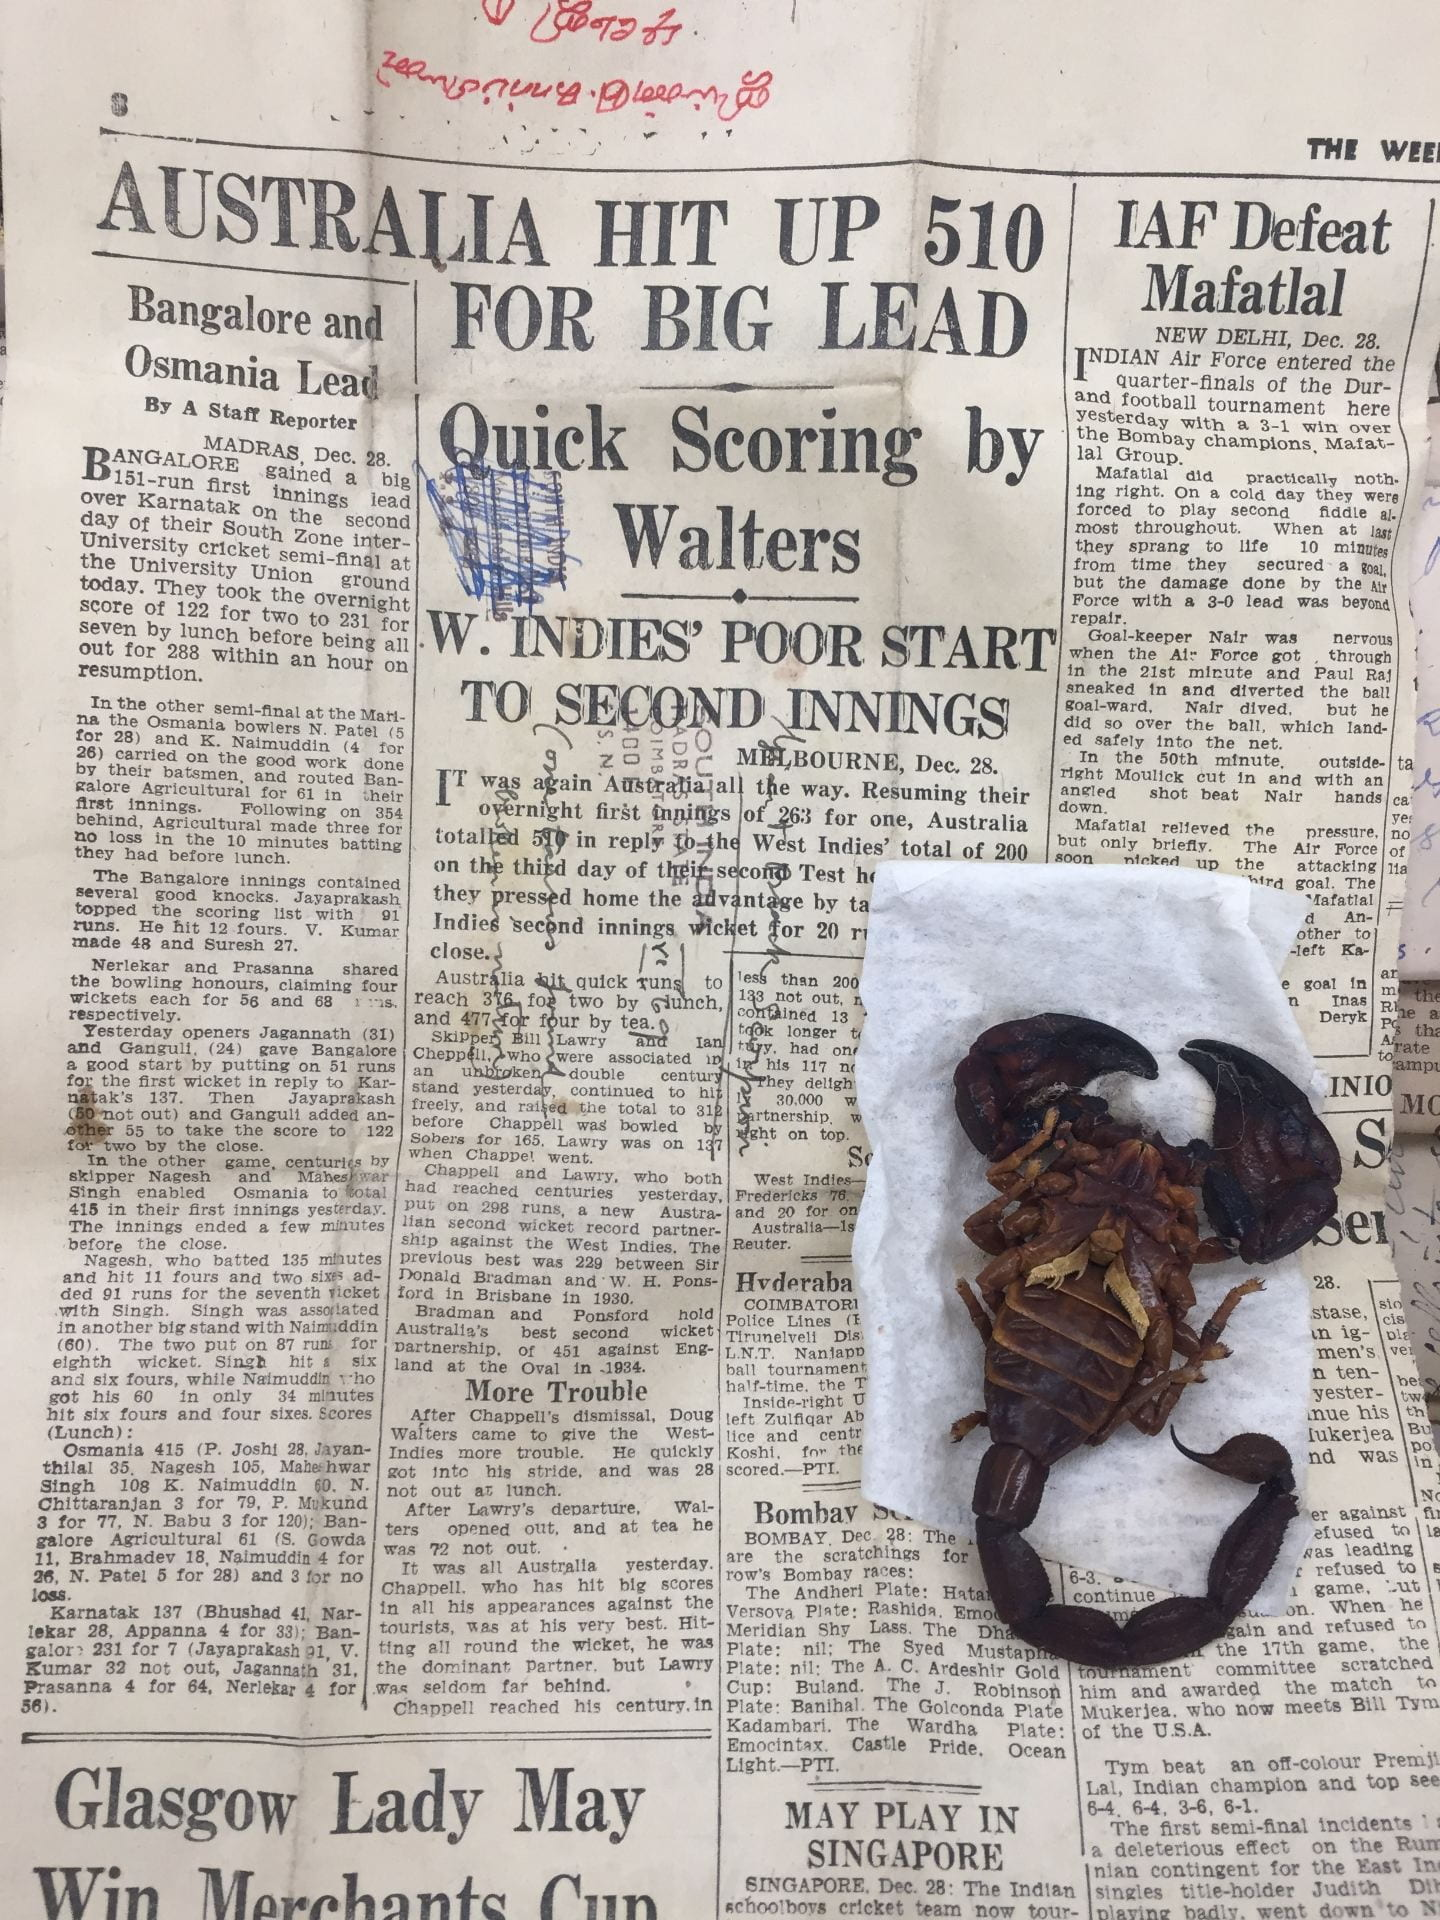 A scorpion specimen that had been wrapped in newspaper covering sportsball